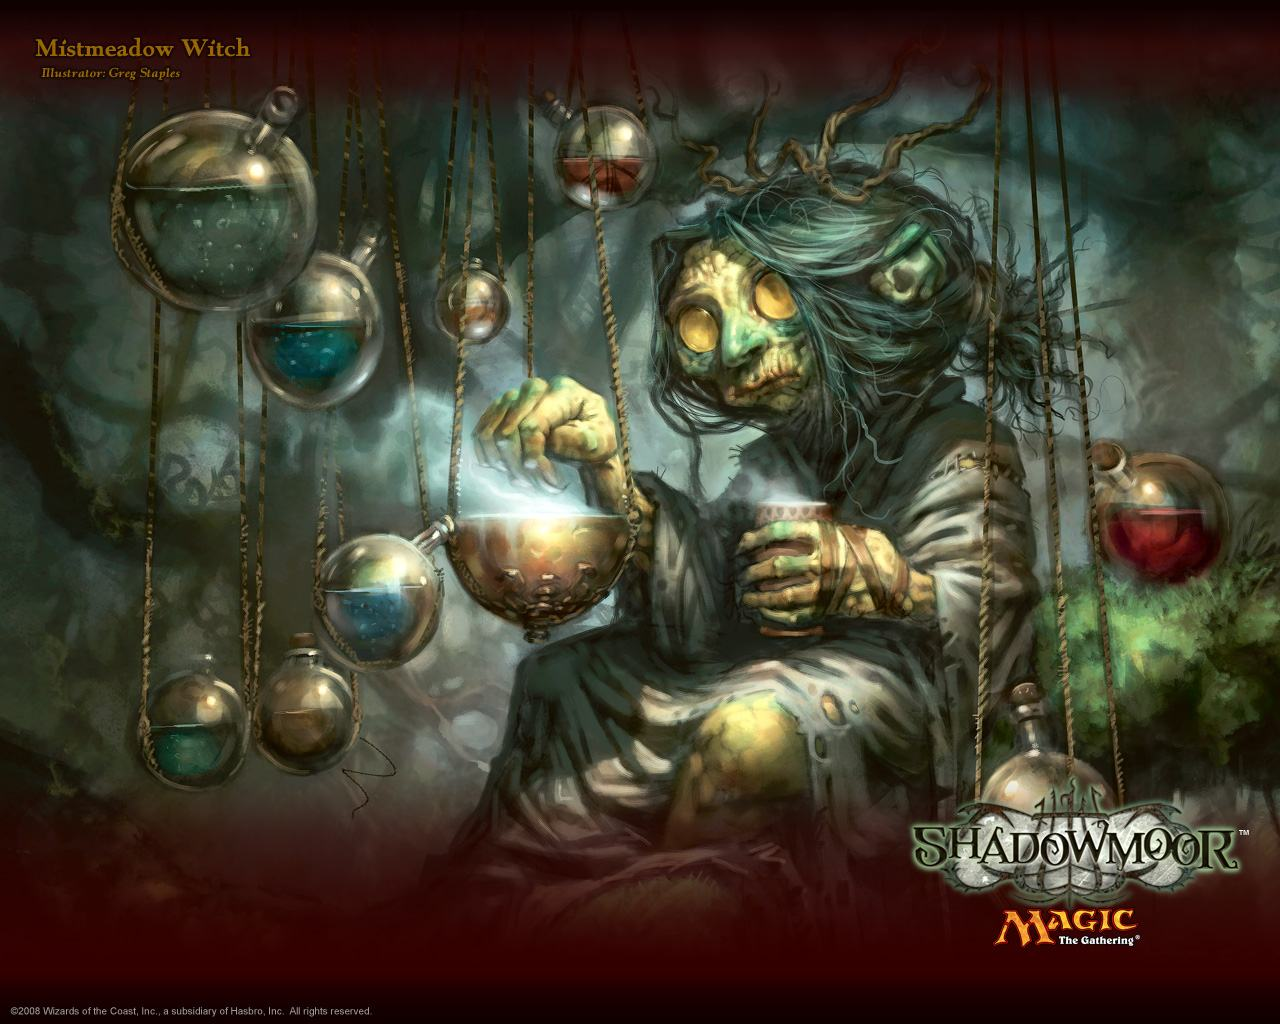 ���� Magic Gathering - witch 1280x1024